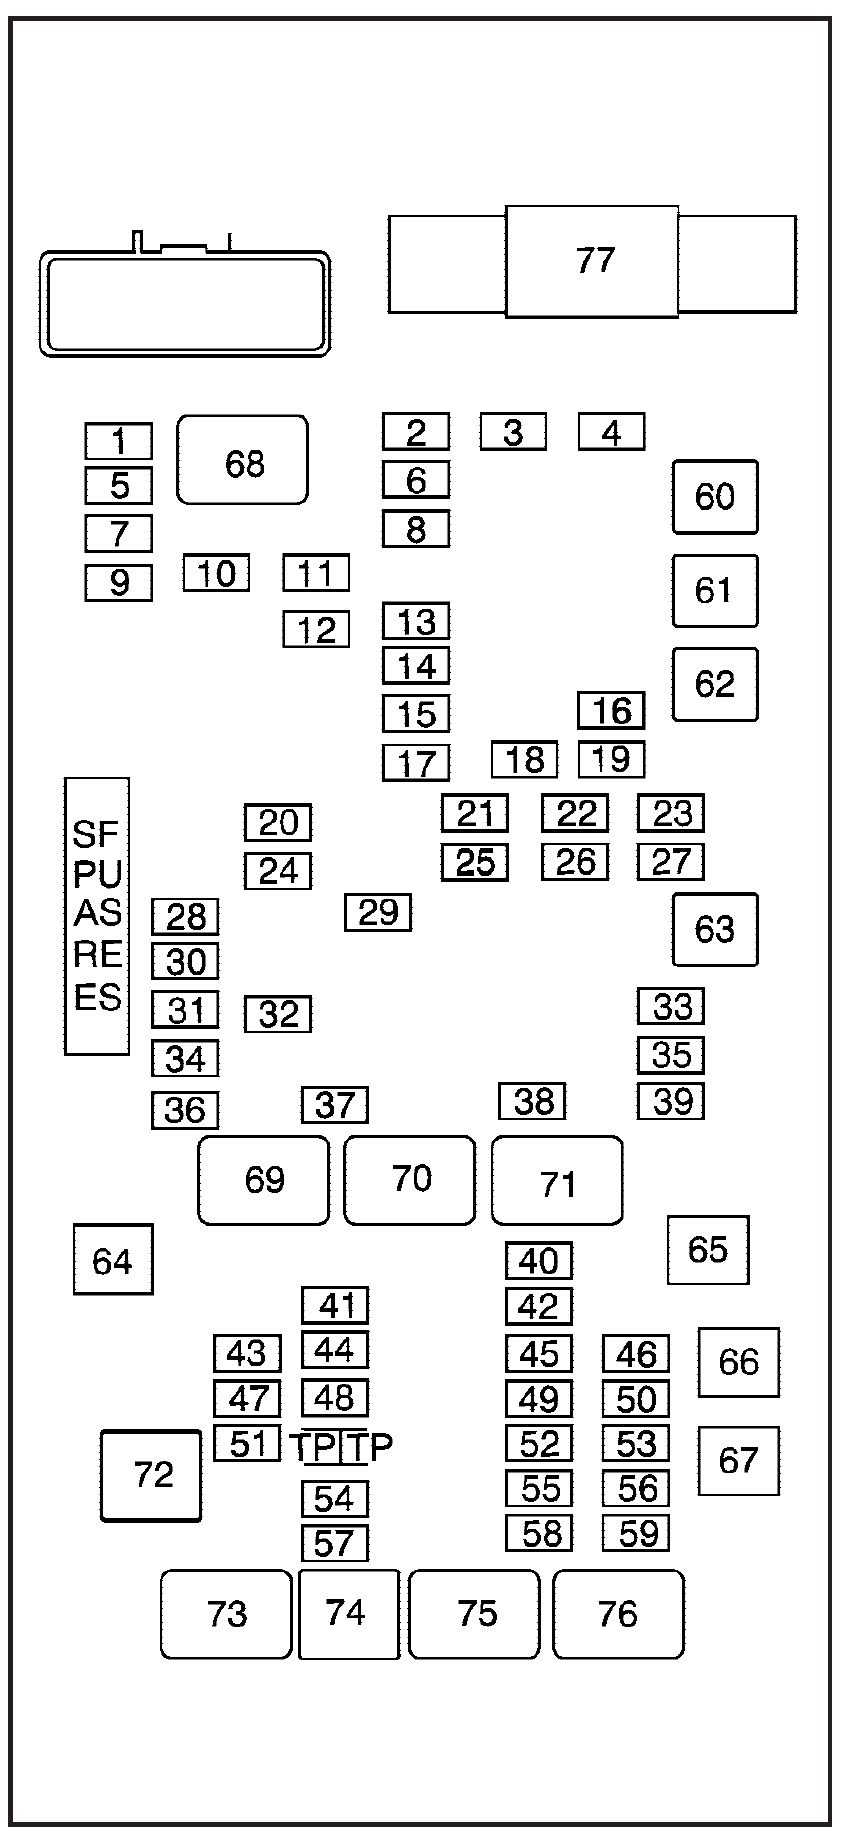 57 Chevy Fuse Box Diagram Wiring Library 2008 Trailblazer 2011 Gmc Savana Example Electrical U2022 Rh Olkha Co